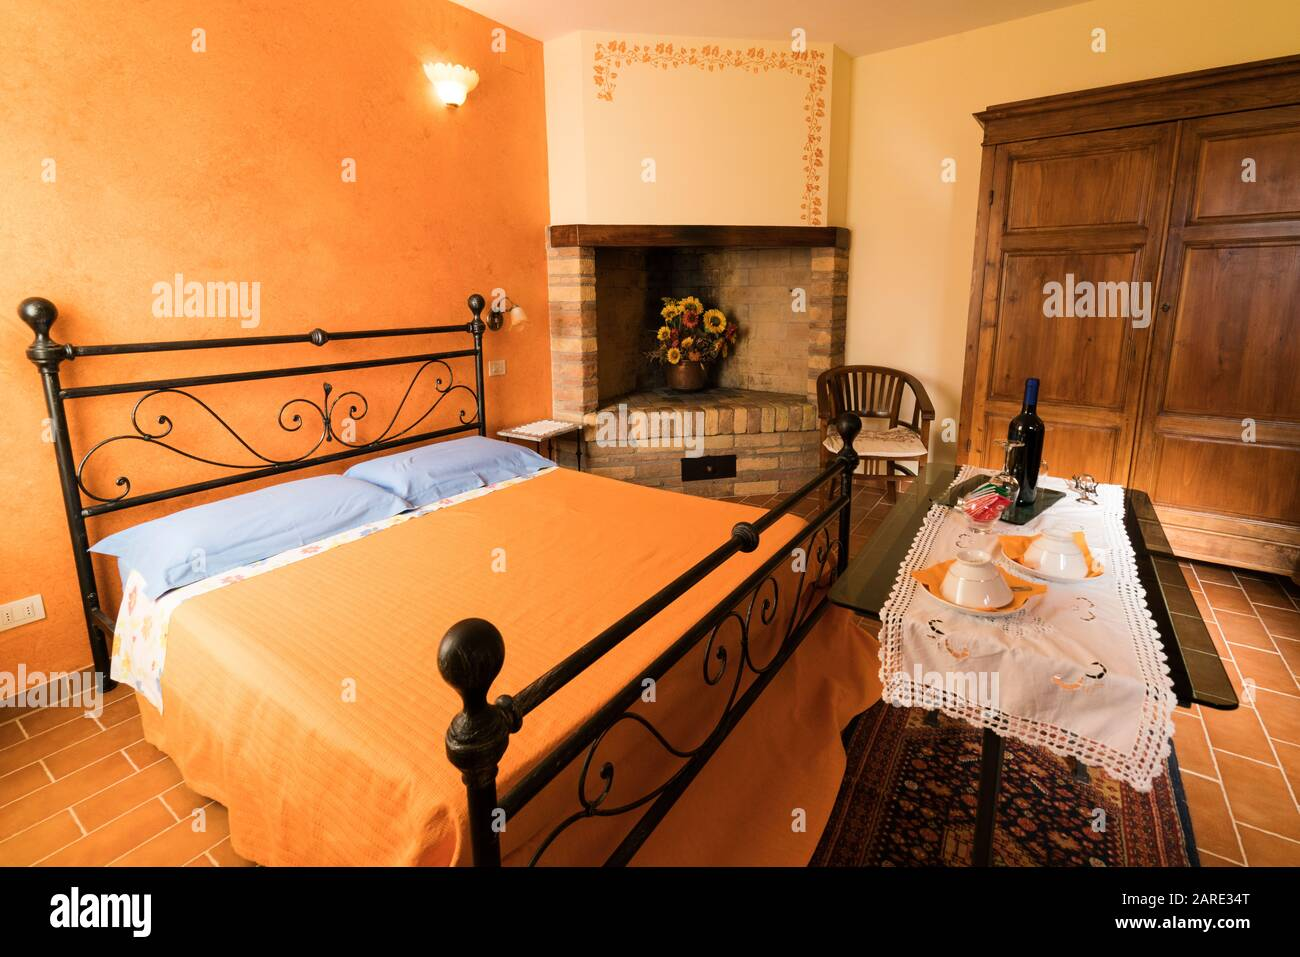 San Quirico Italy Typical Interior Of A Agriturismo In Tuscany With Stone Fireplace And Wrought Iron Bed In A Room Painted In Sunset Orange Stock Photo Alamy